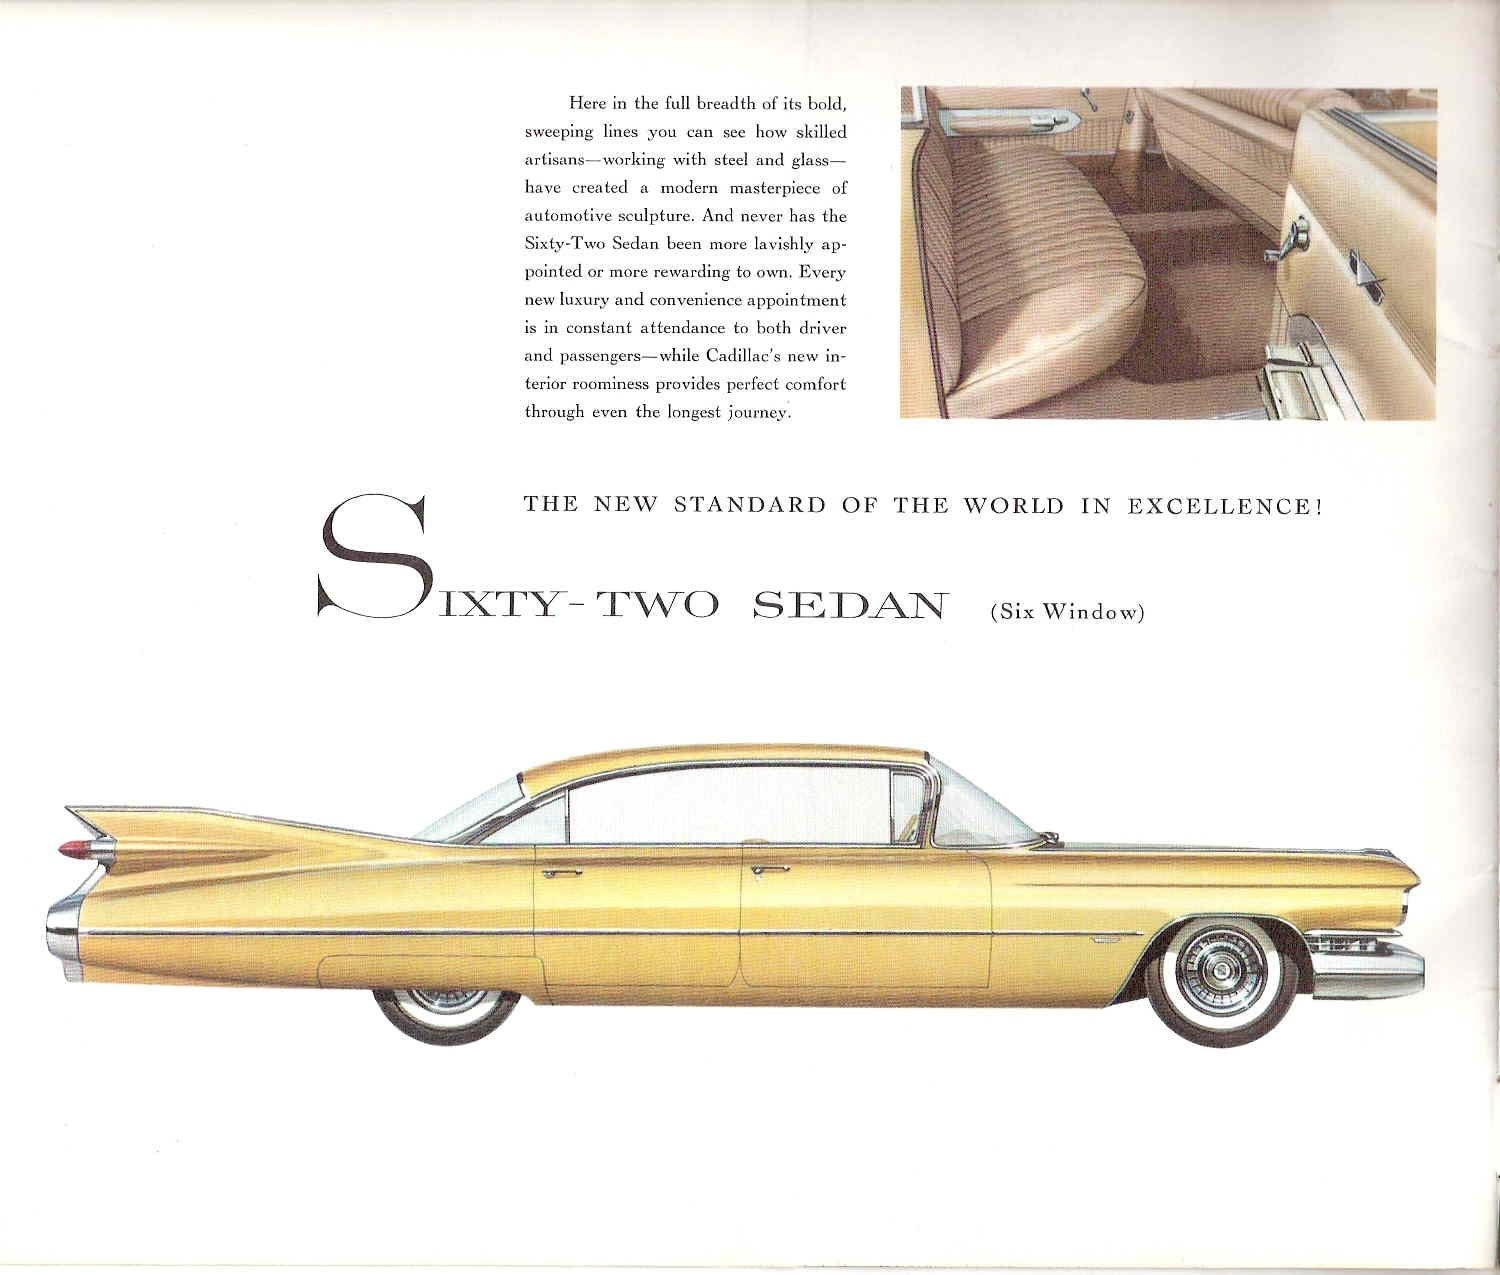 1959 cadillac series sixty two sedan devillee ad is fabulous 1959 cadillac series sixty two sedan devillee ad is fabulouss all about the cadillac sciox Gallery